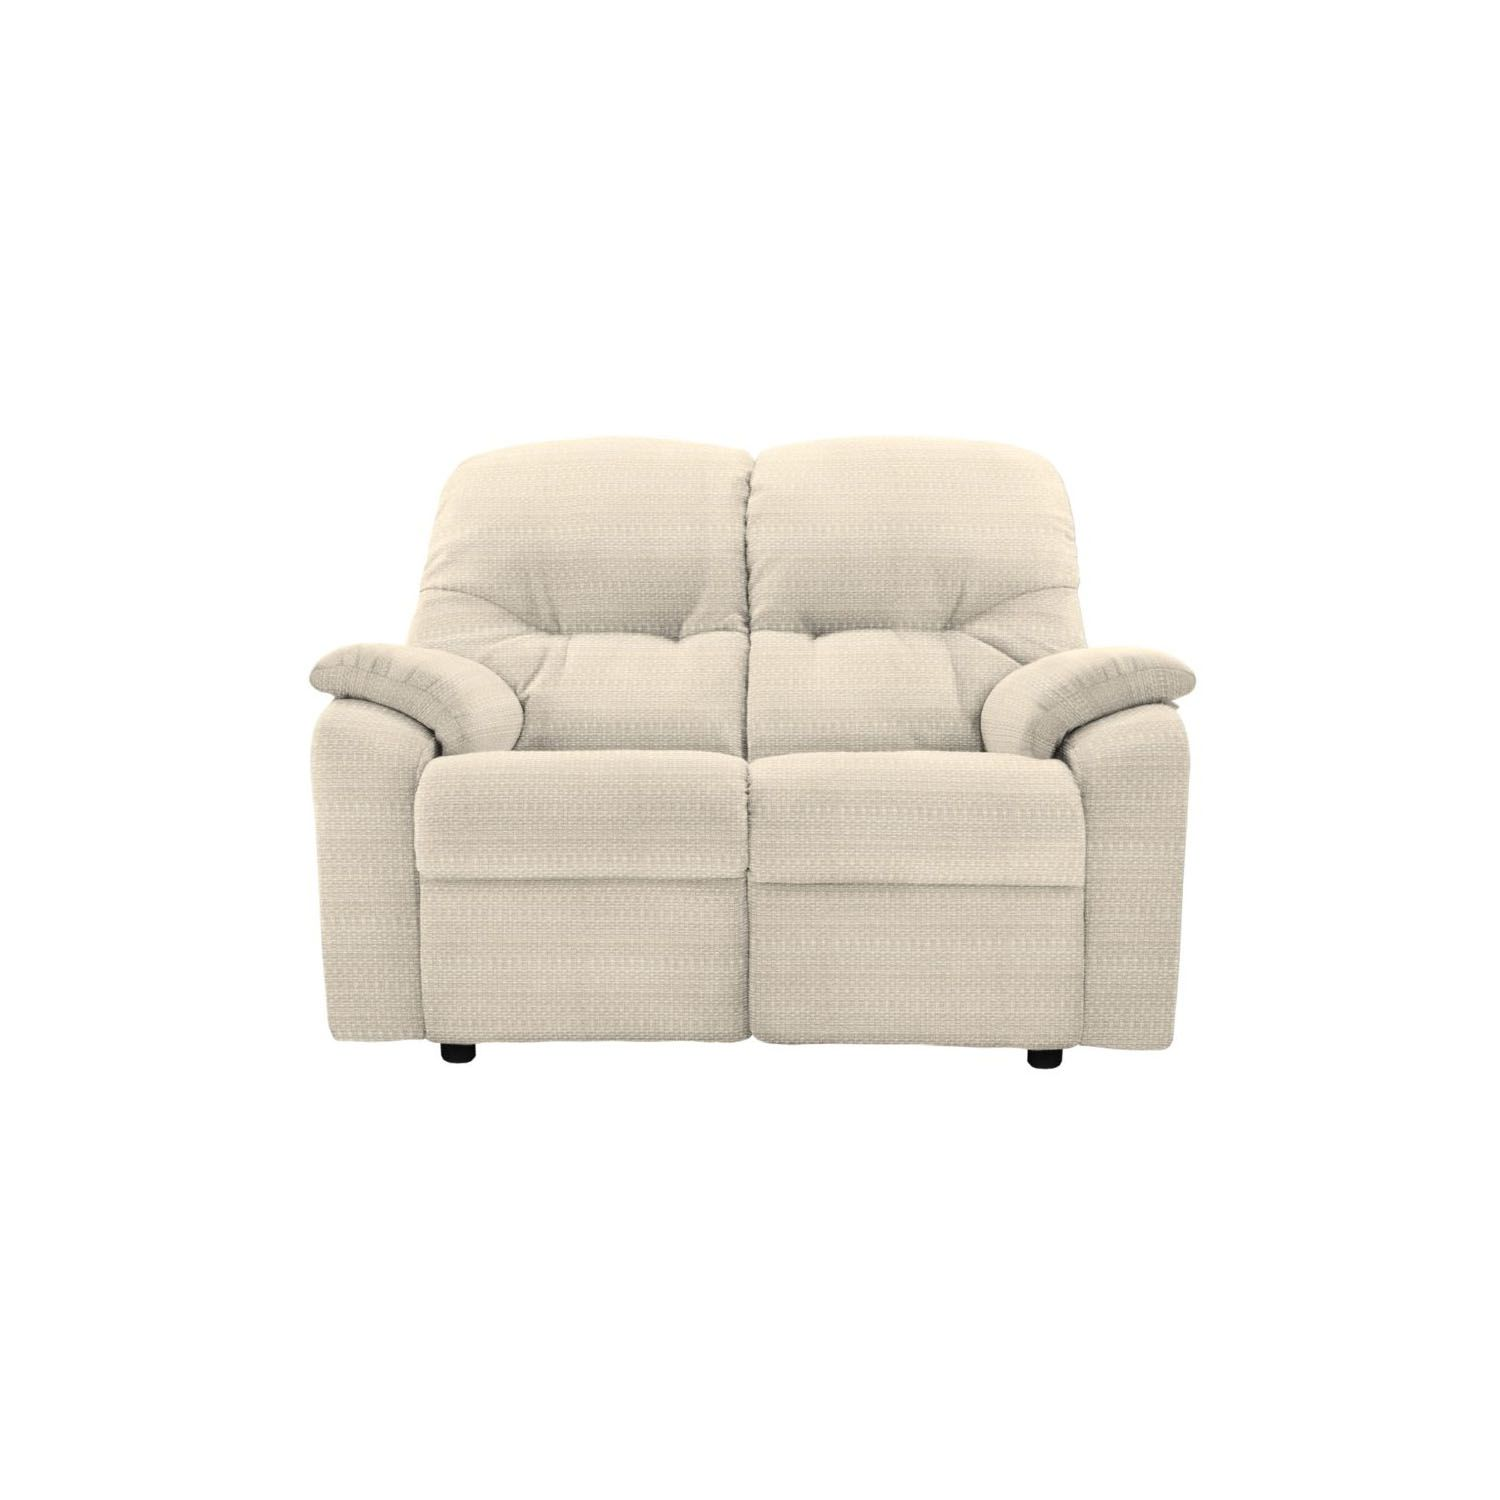 Image of G Plan Mistral 2 Seater Fabric Sofa, Small